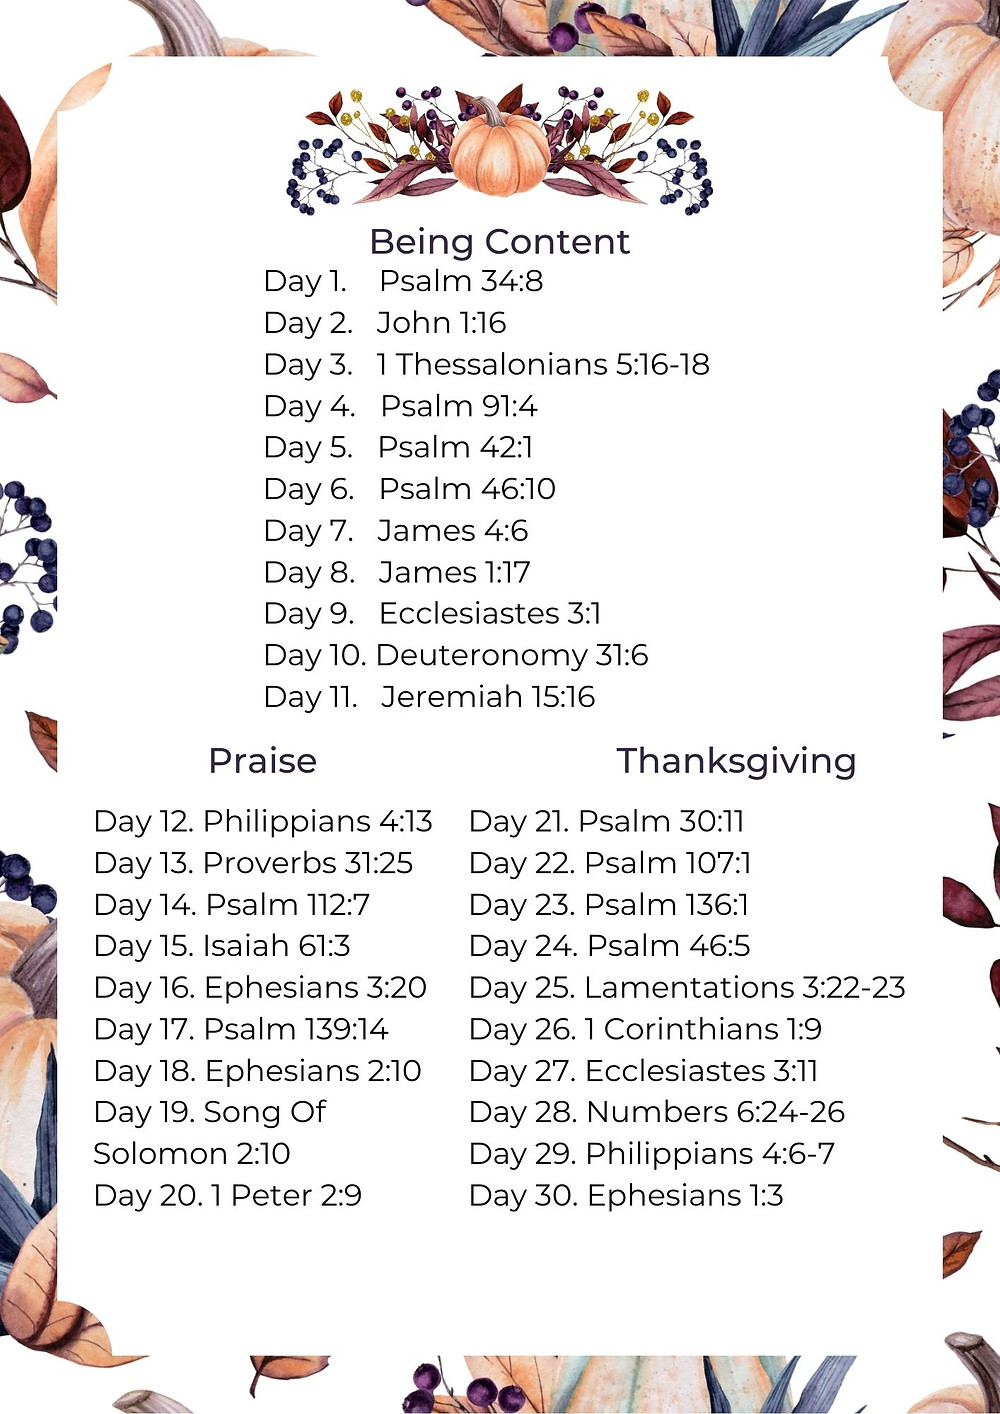 30 Bible Verses for Thanksgiving. Thanksgiving Bible study.